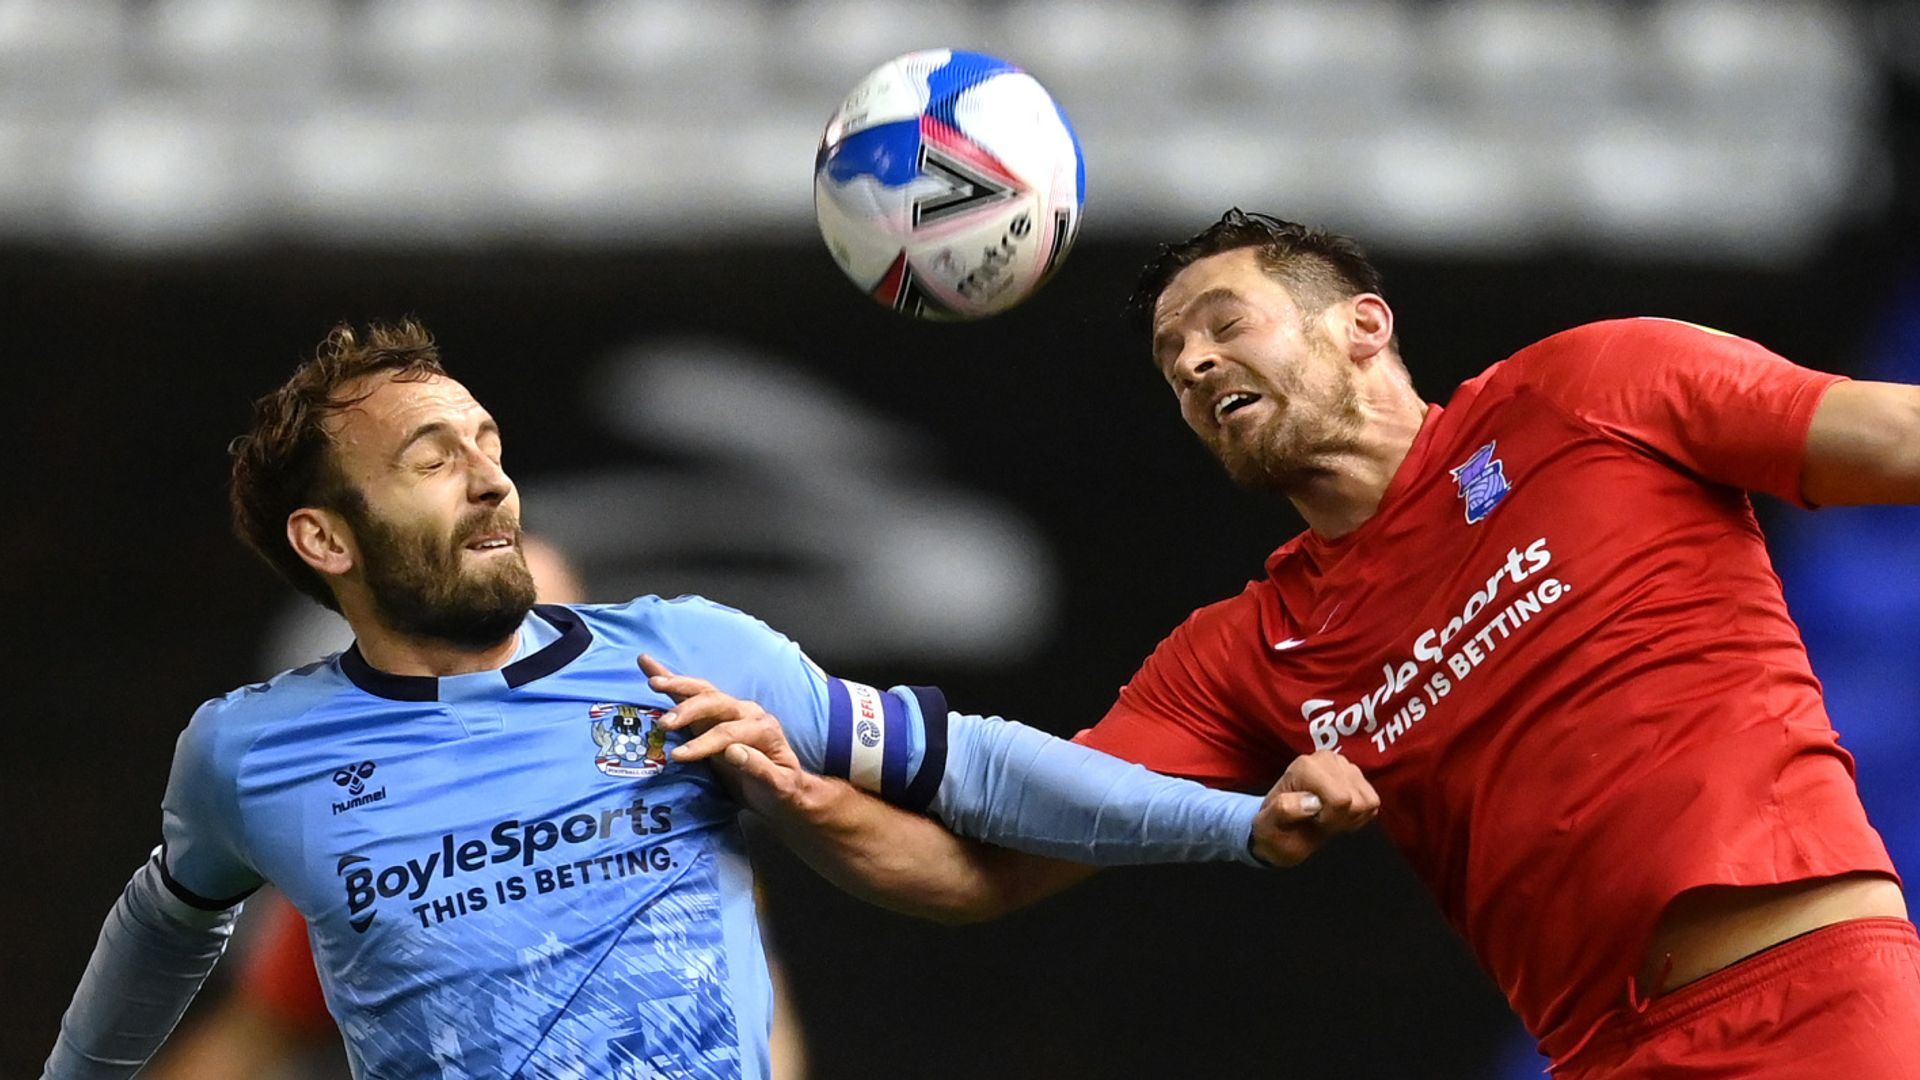 Coventry hold Birmingham at St Andrew's